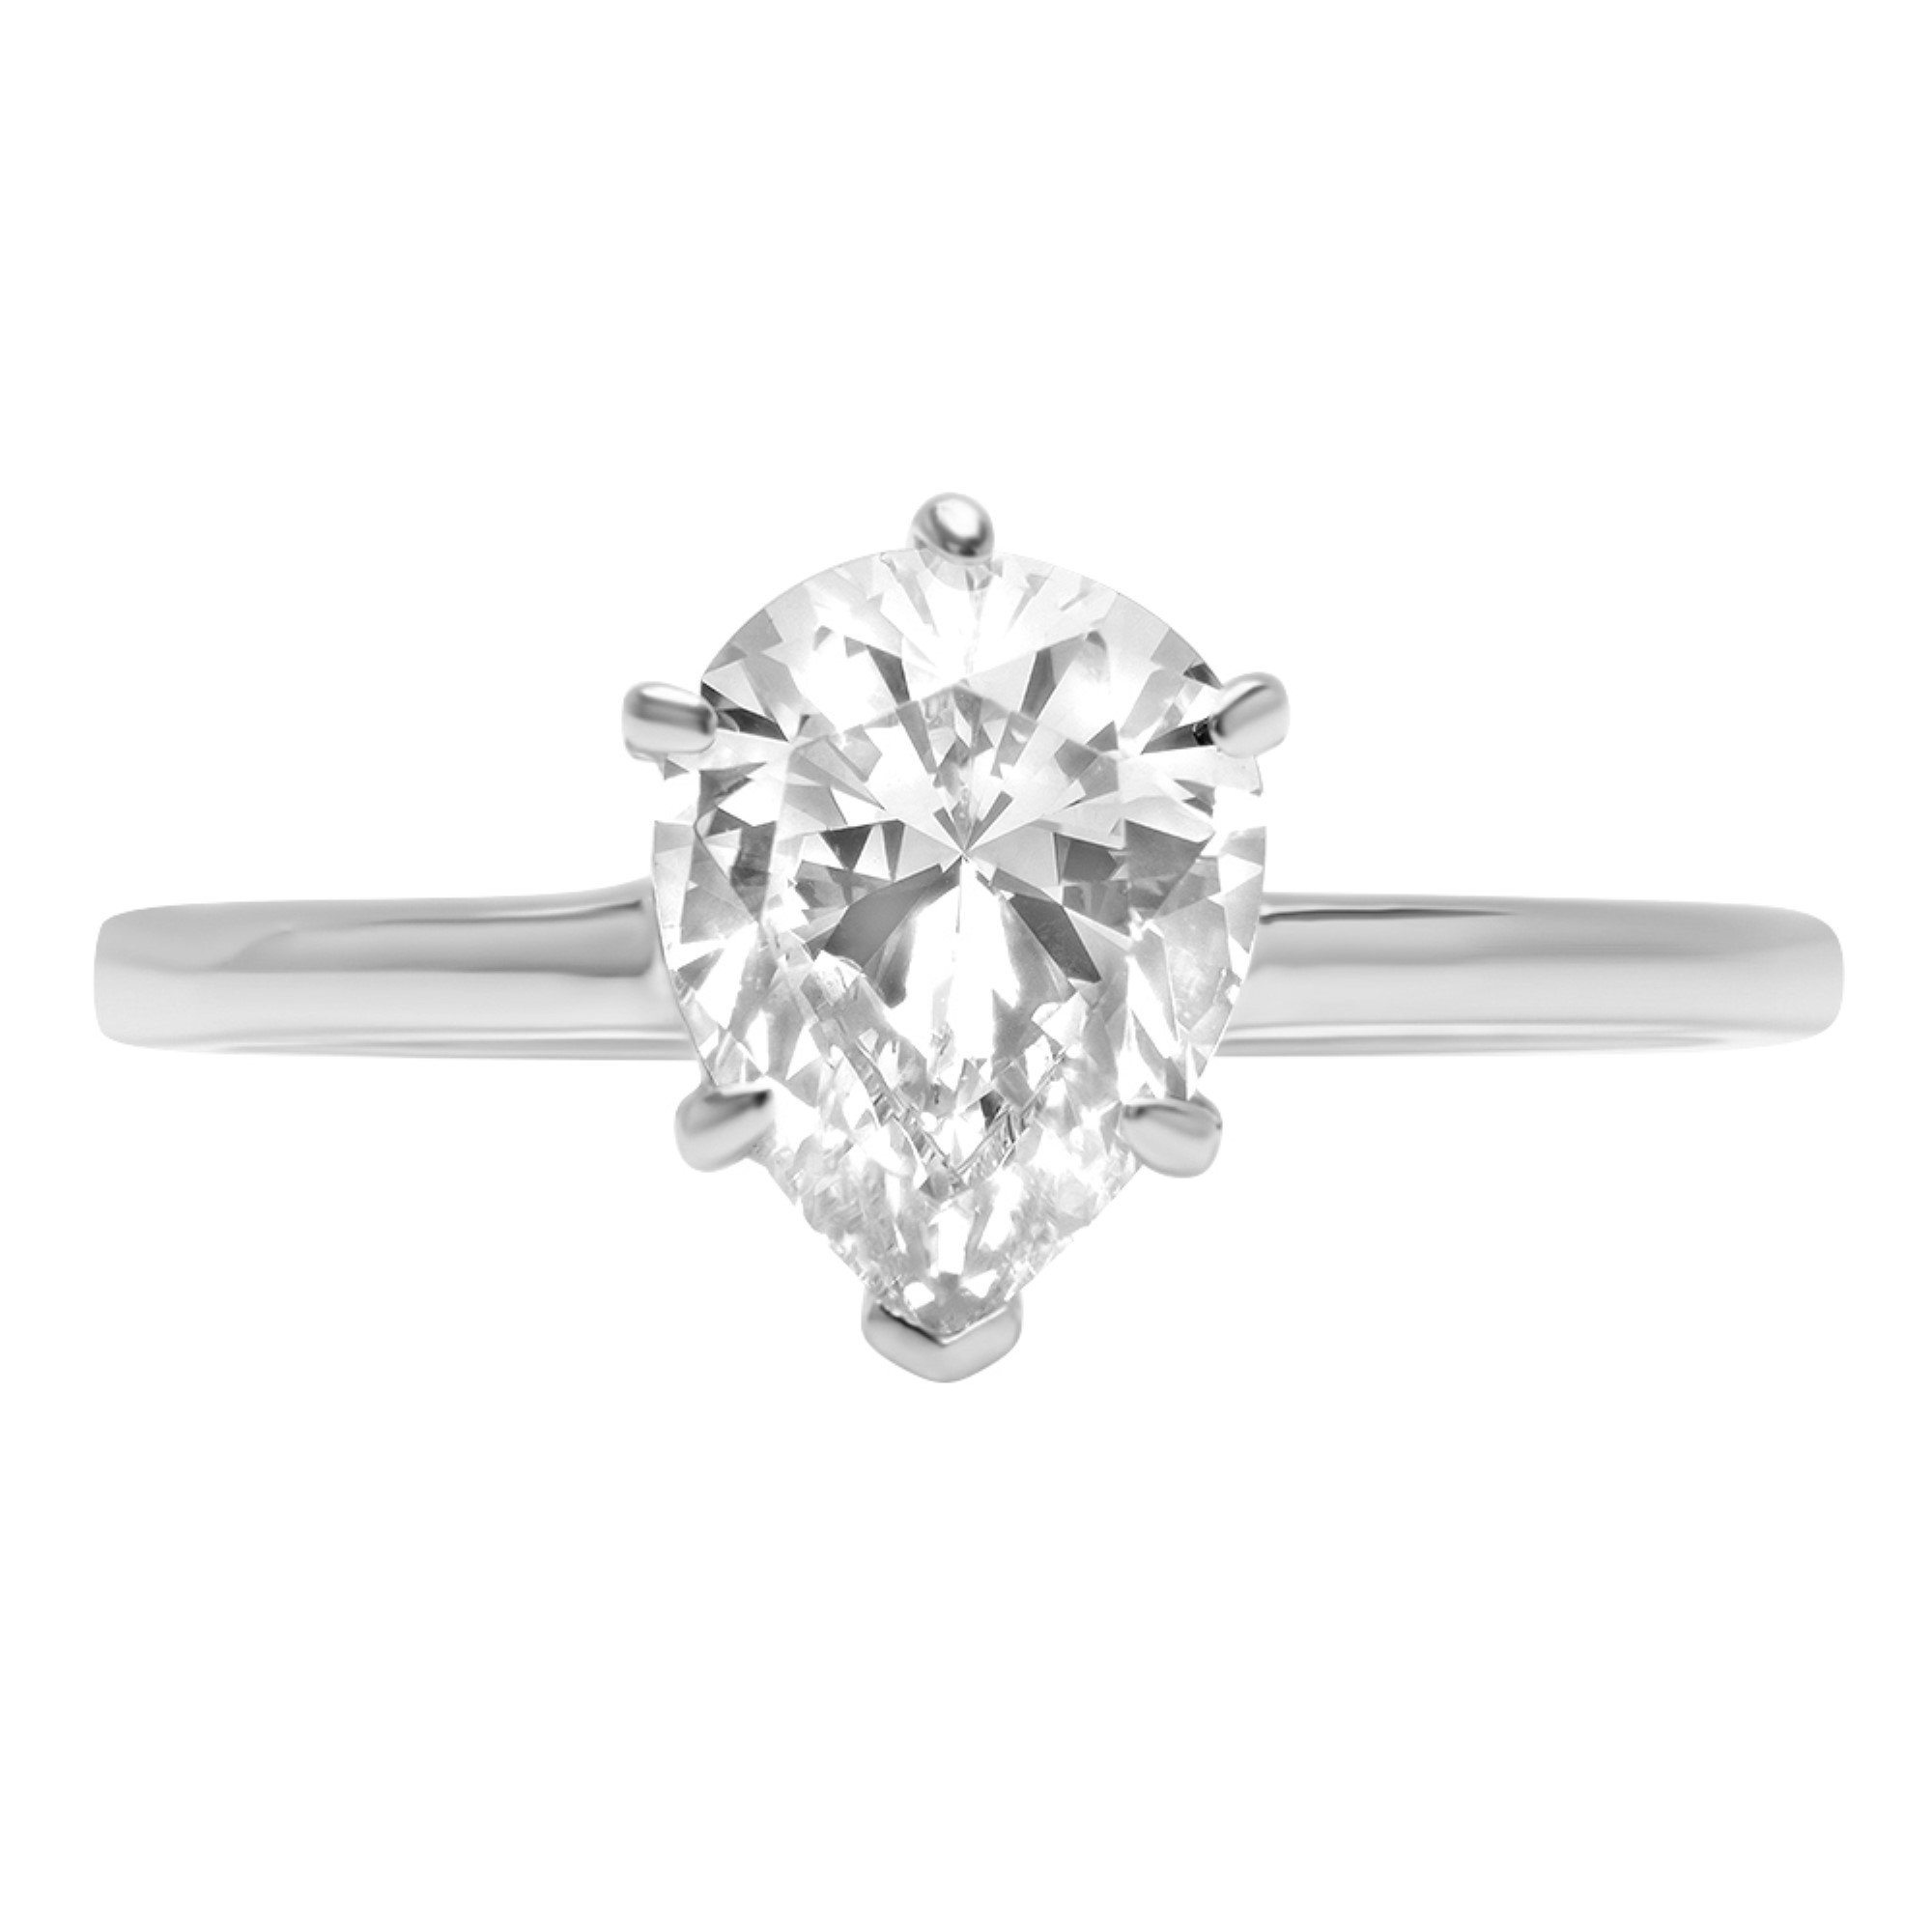 0.95ct Brilliant Pear Cut Solitaire Highest Quality Moissanite Ideal D 6-Prong Statement Ring in Solid Real 14k White Gold for Women